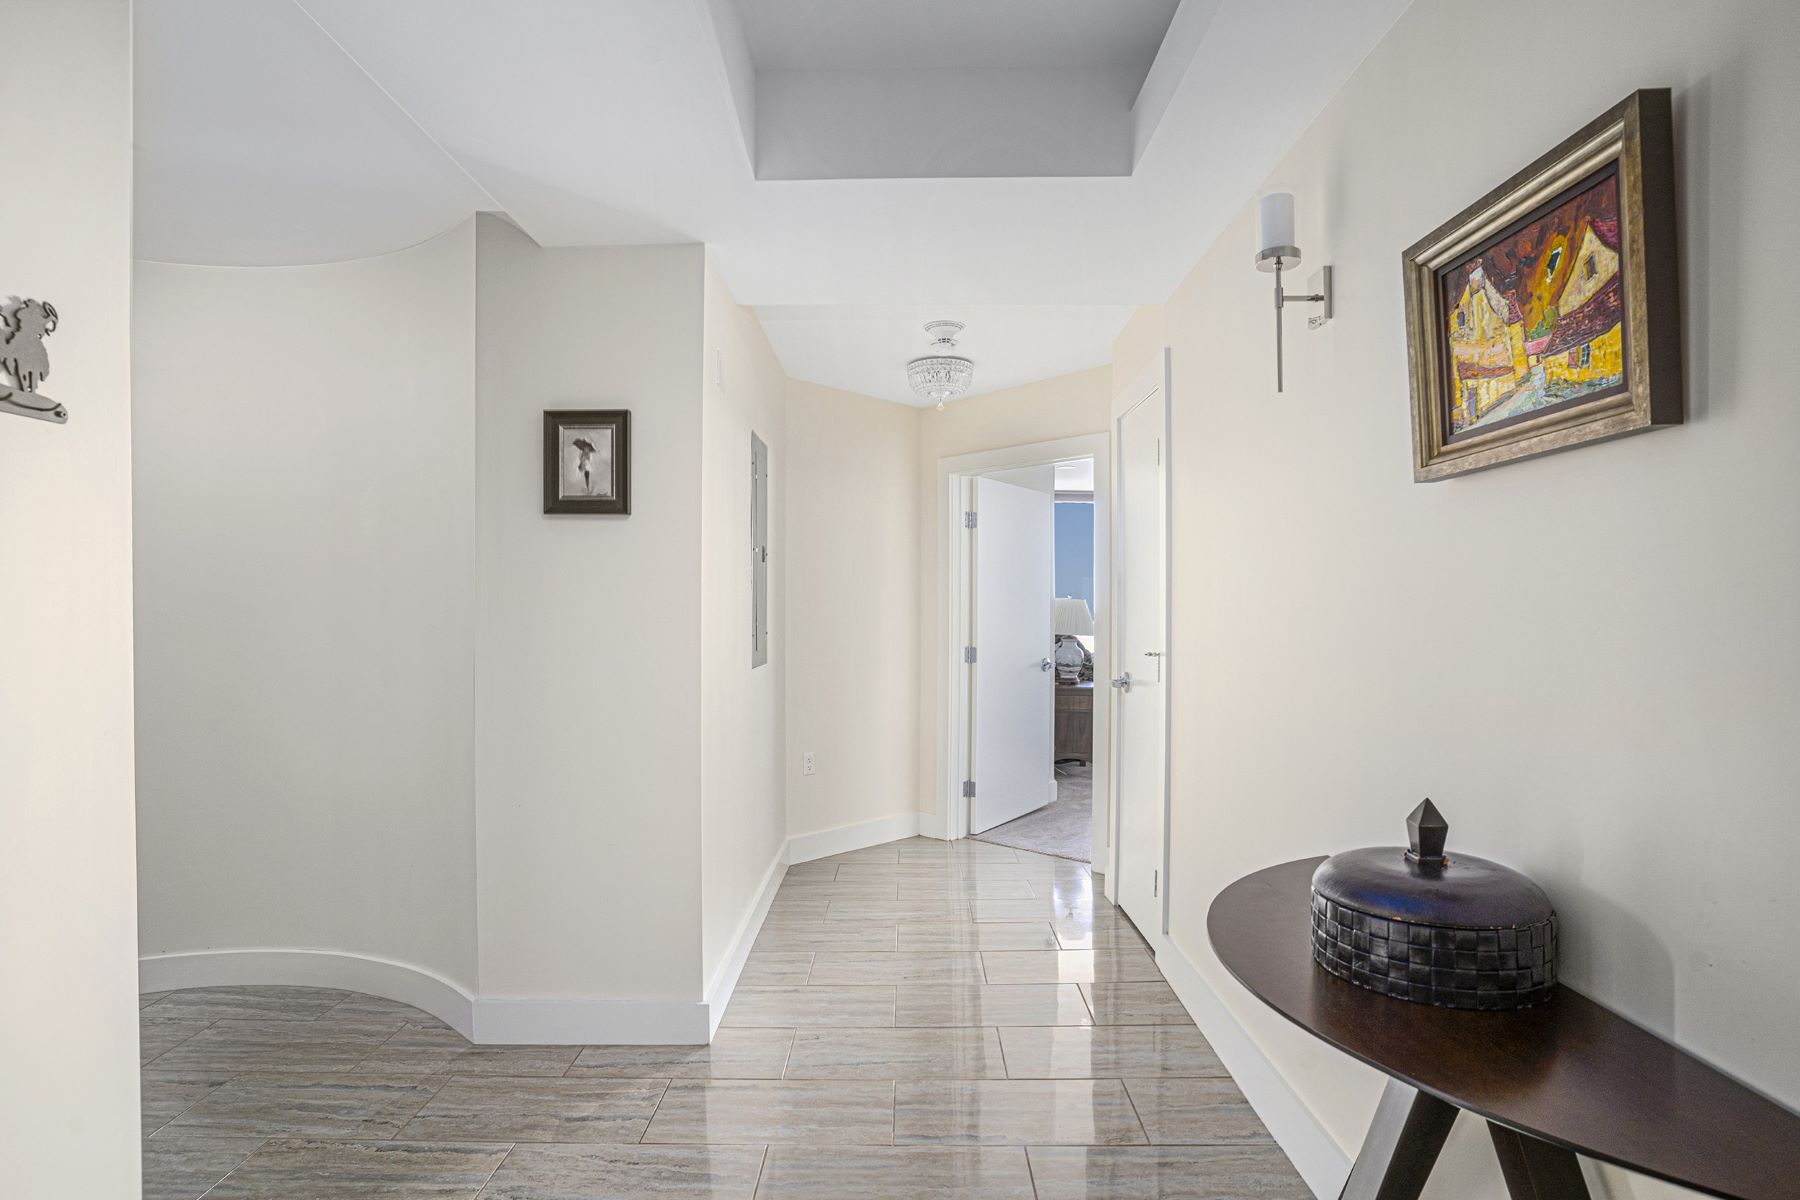 Additional photo for property listing at 1 West Exchange Street, #1807, Providence, RI 1 West Exchange Street 1807 Providence, Rhode Island 02903 United States